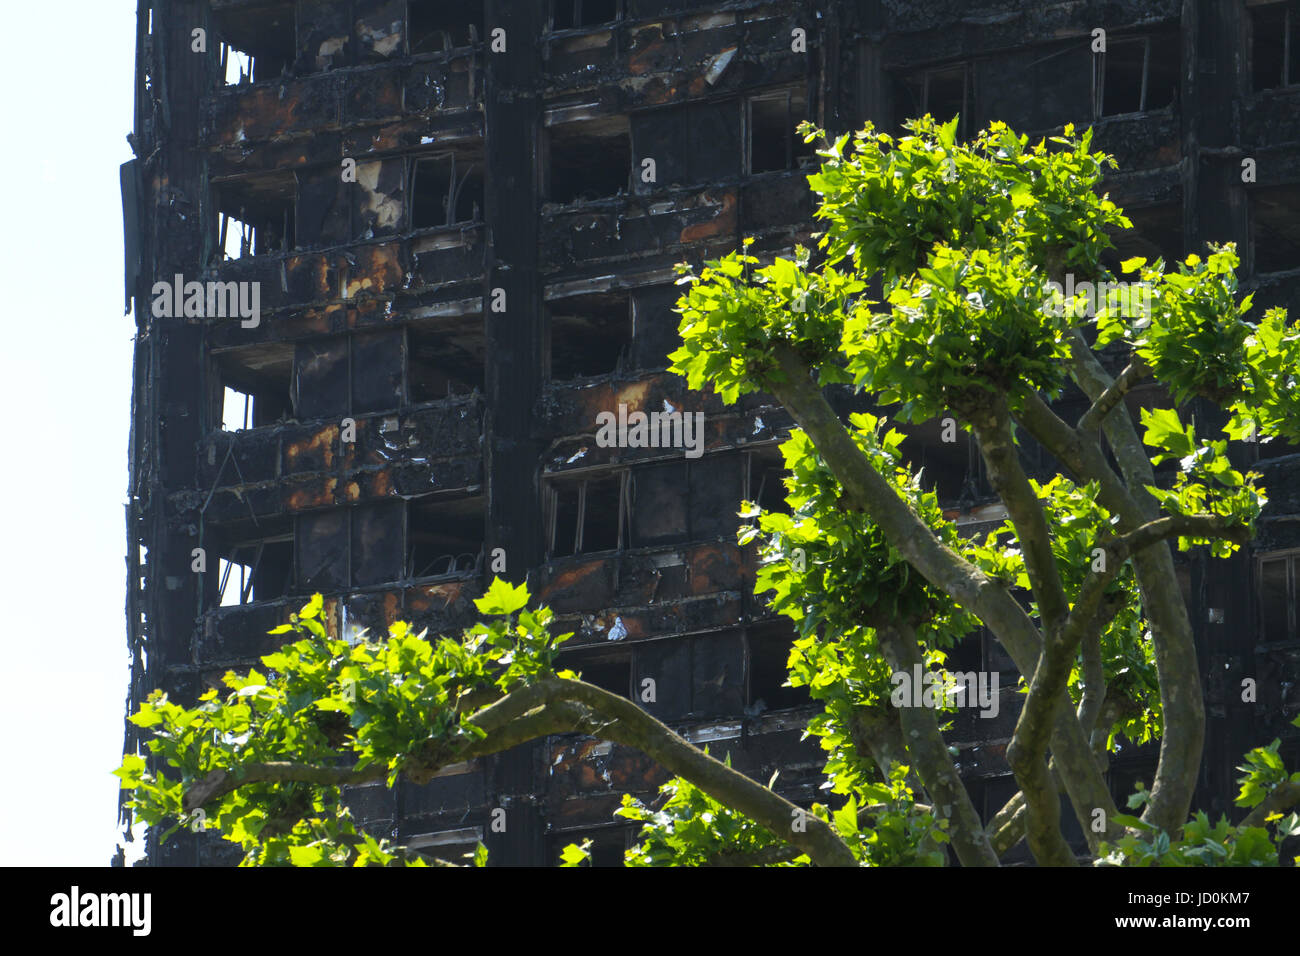 London, UK. 16th June, 2017. The charred remains of the 24-storey block Grenfell tower block located in the borough - Stock Image